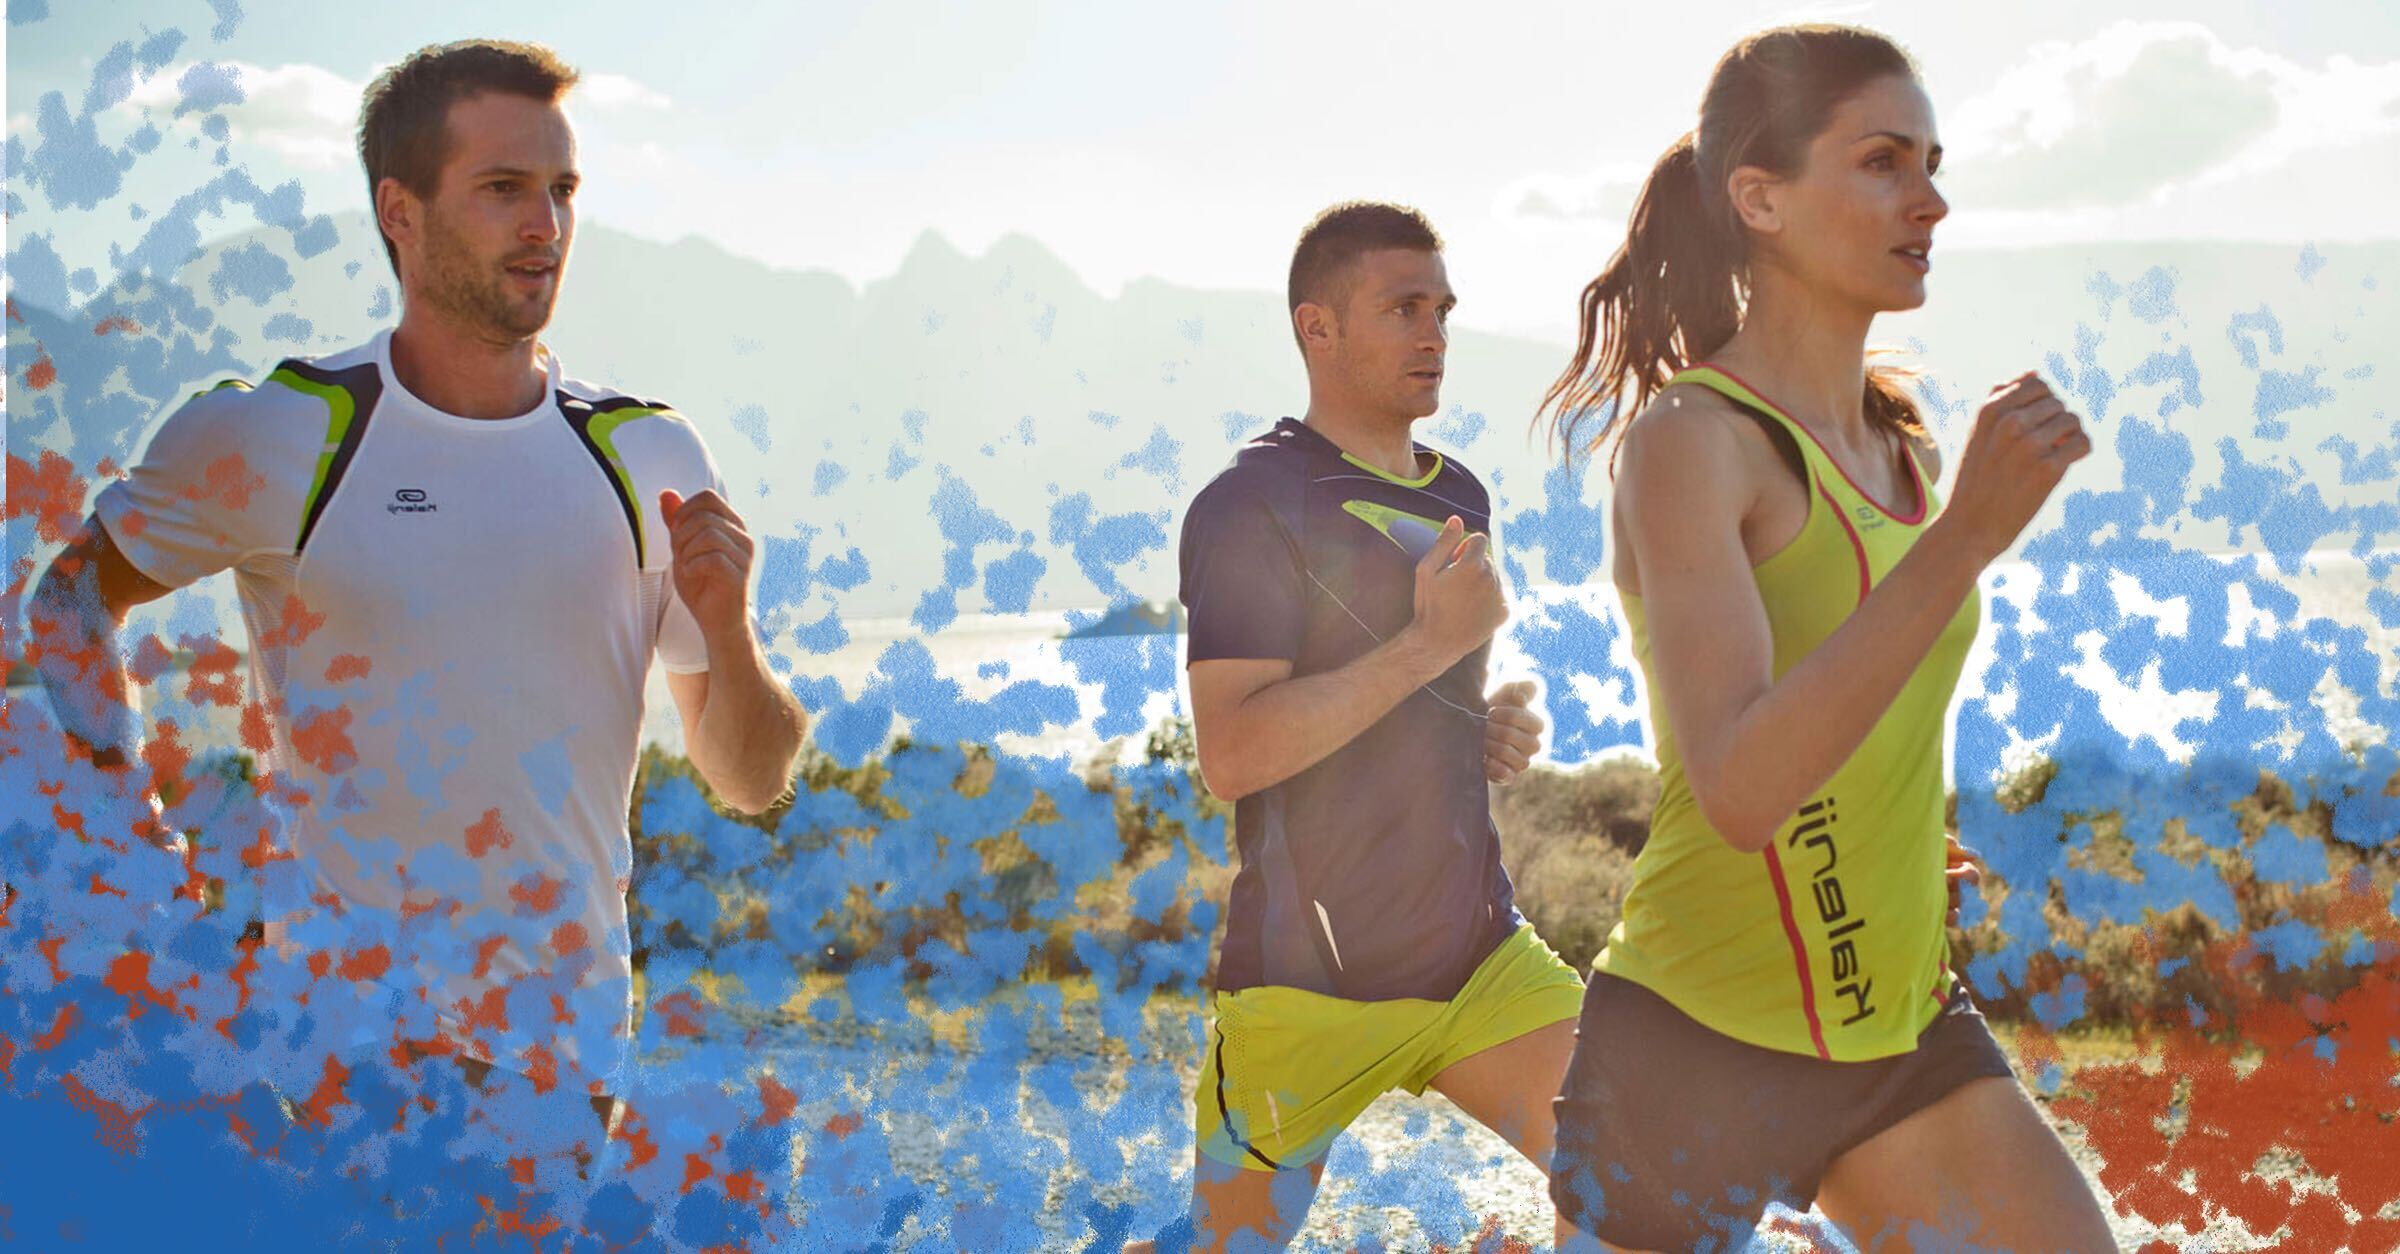 Decathlon: How the Sports Retailer Stands Out from its Competitors